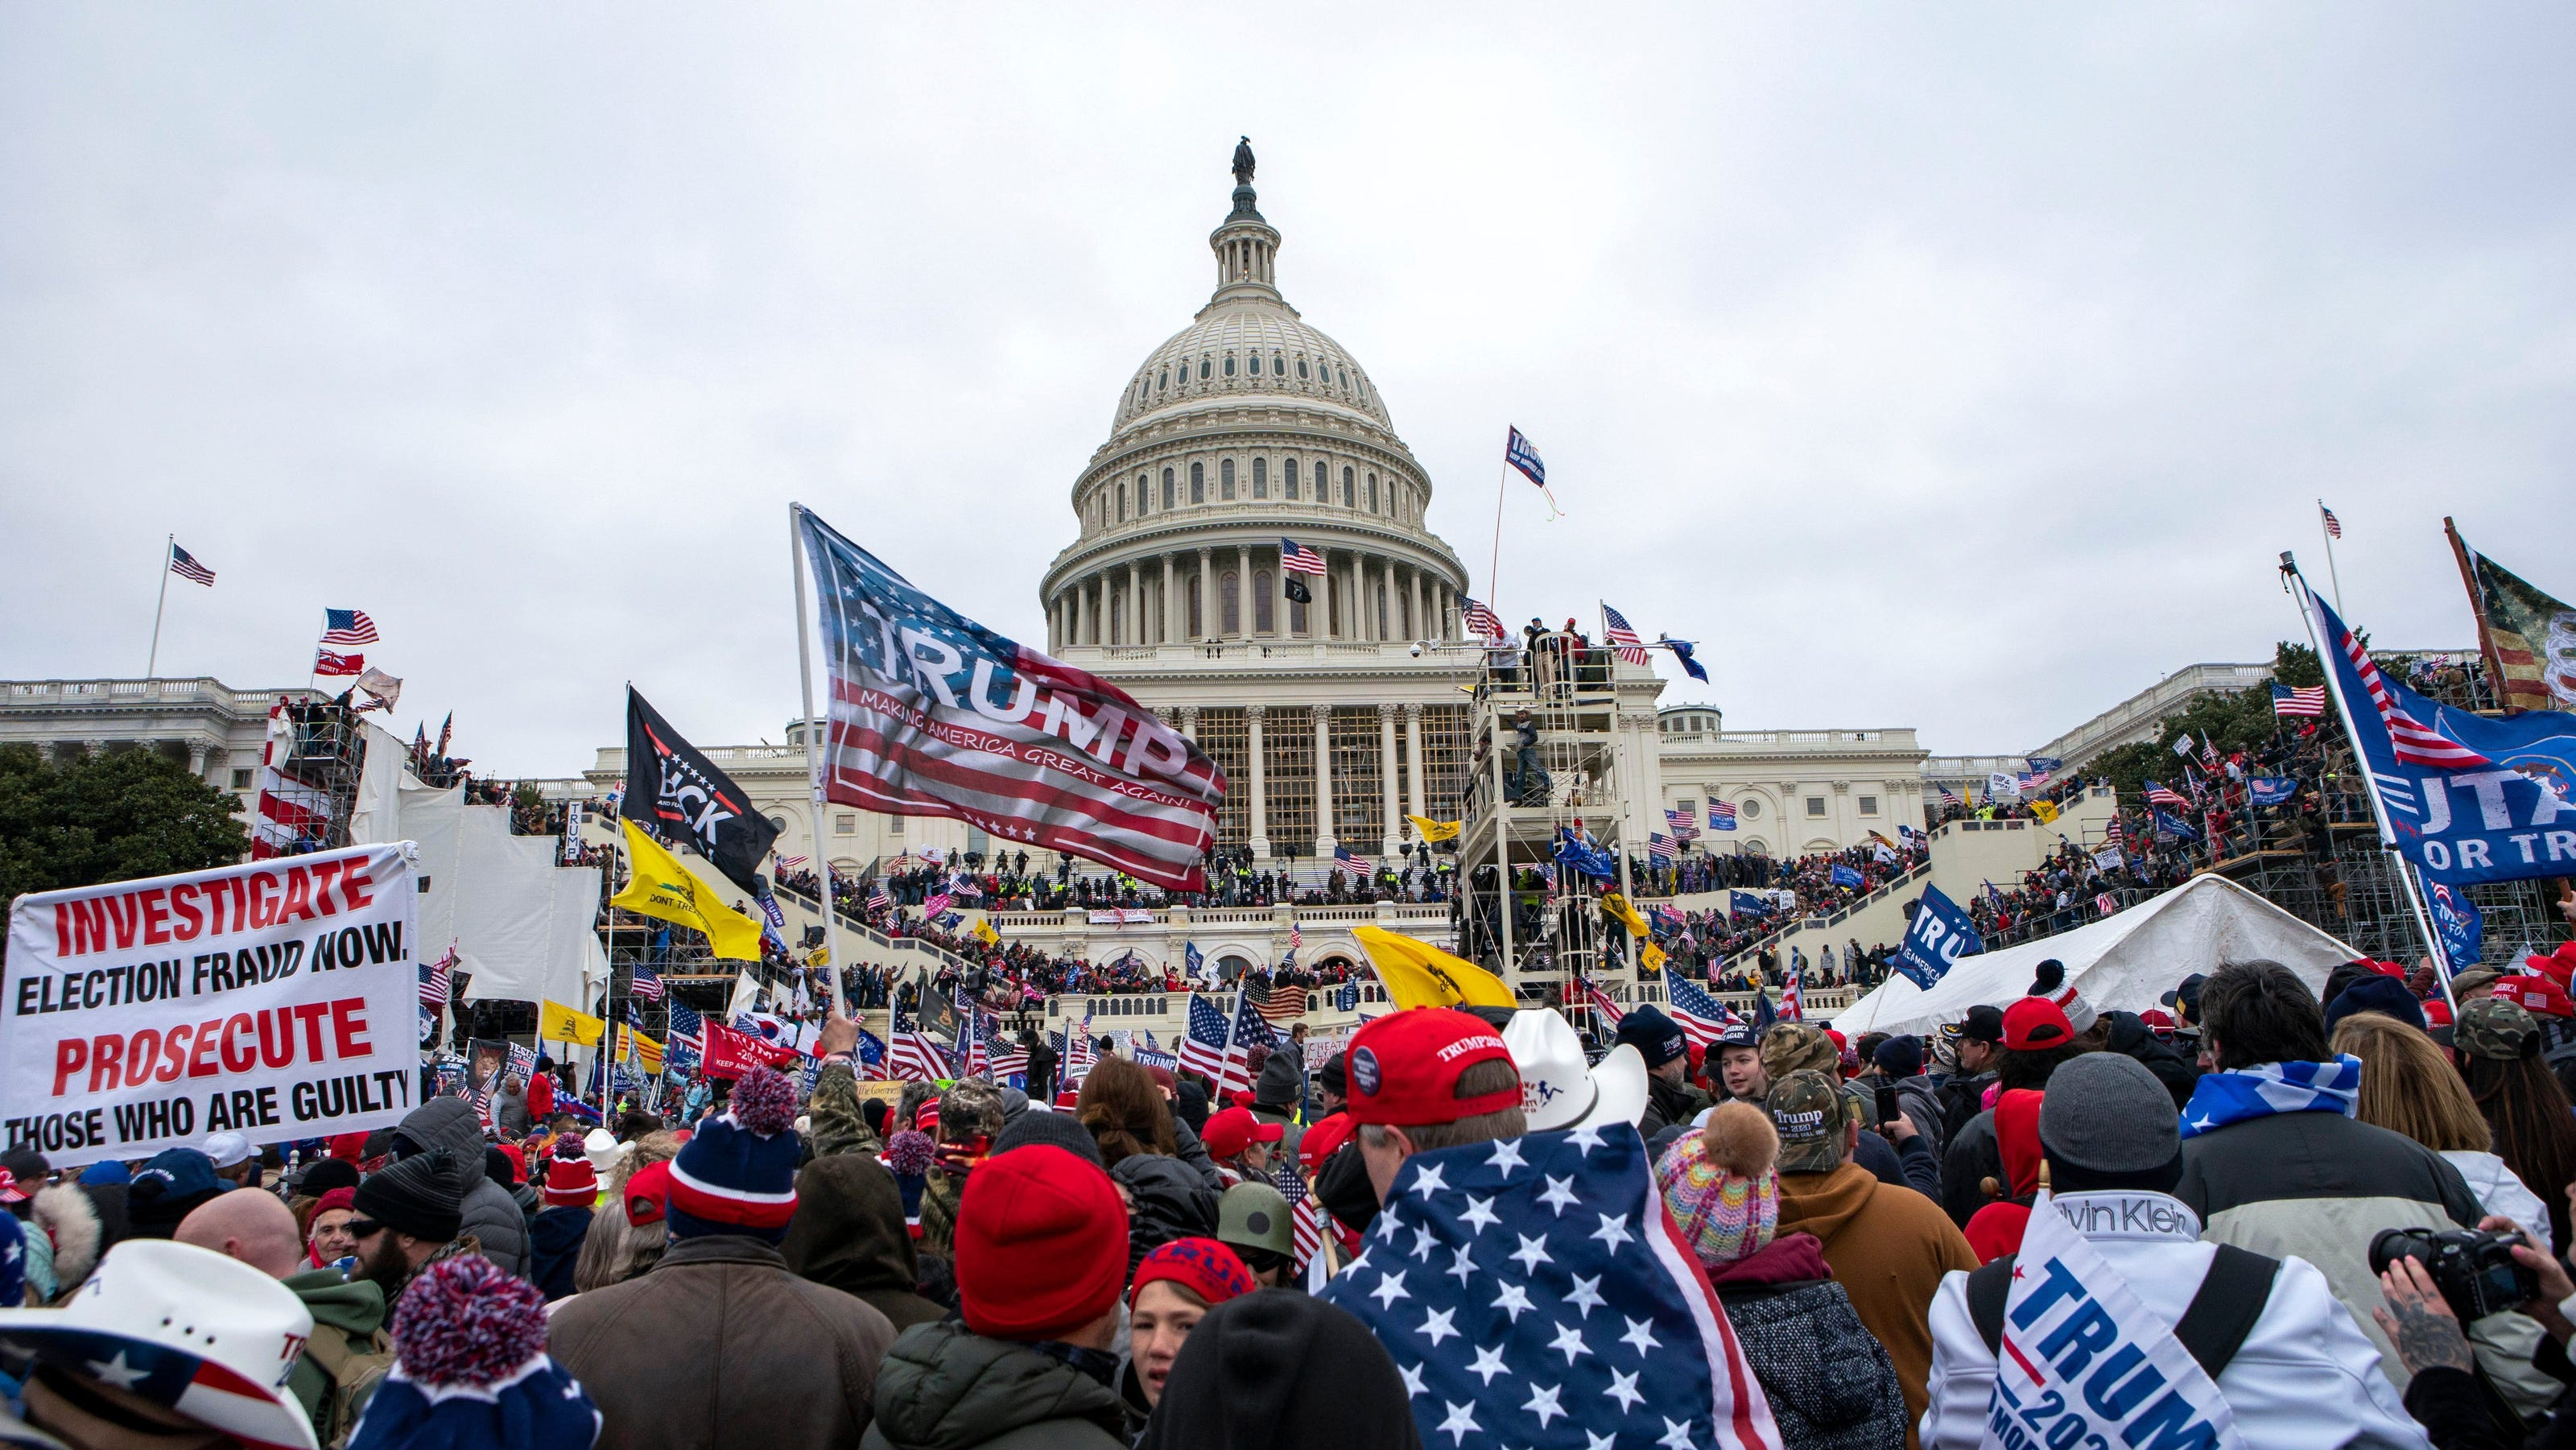 www.wickedlocal.com: OPINION: After underscoring American division, could Capitol riots mark a turning point?